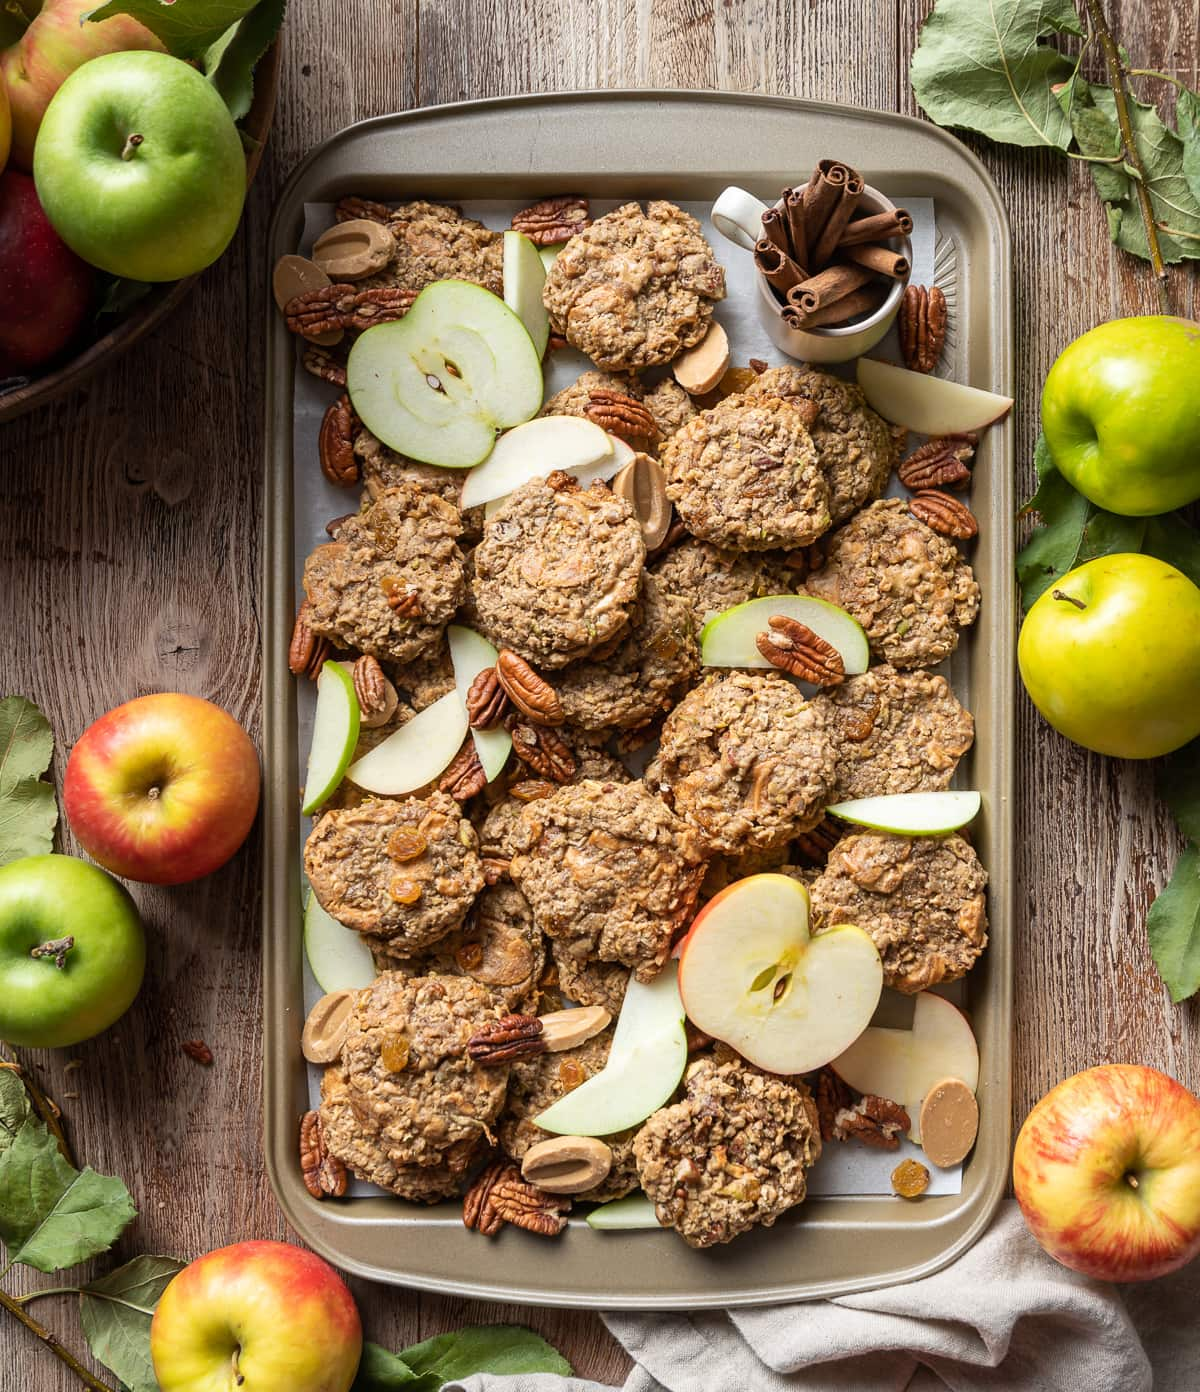 apple oatmeal cookies on a tray with pecans apple slices golden raisins and whole red and green apples